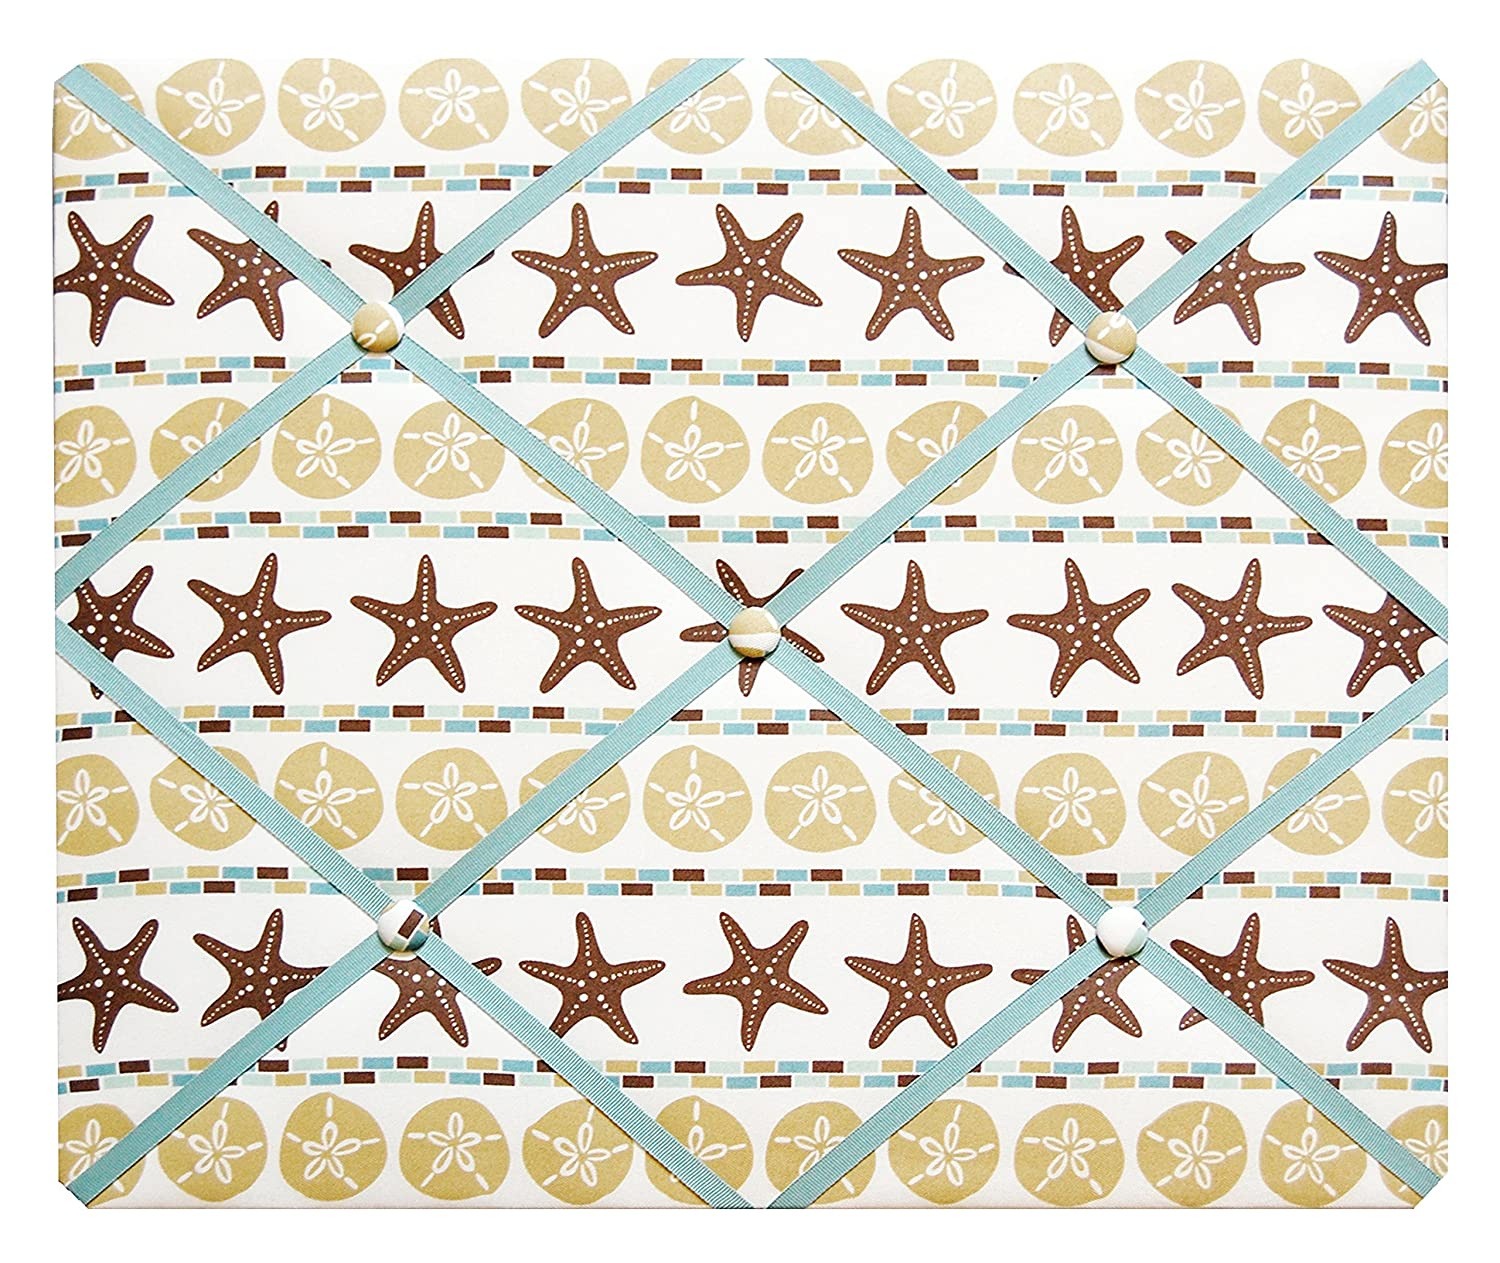 Starfish and Sand Dollar Beach Theme French Memo Board 02-00-0029